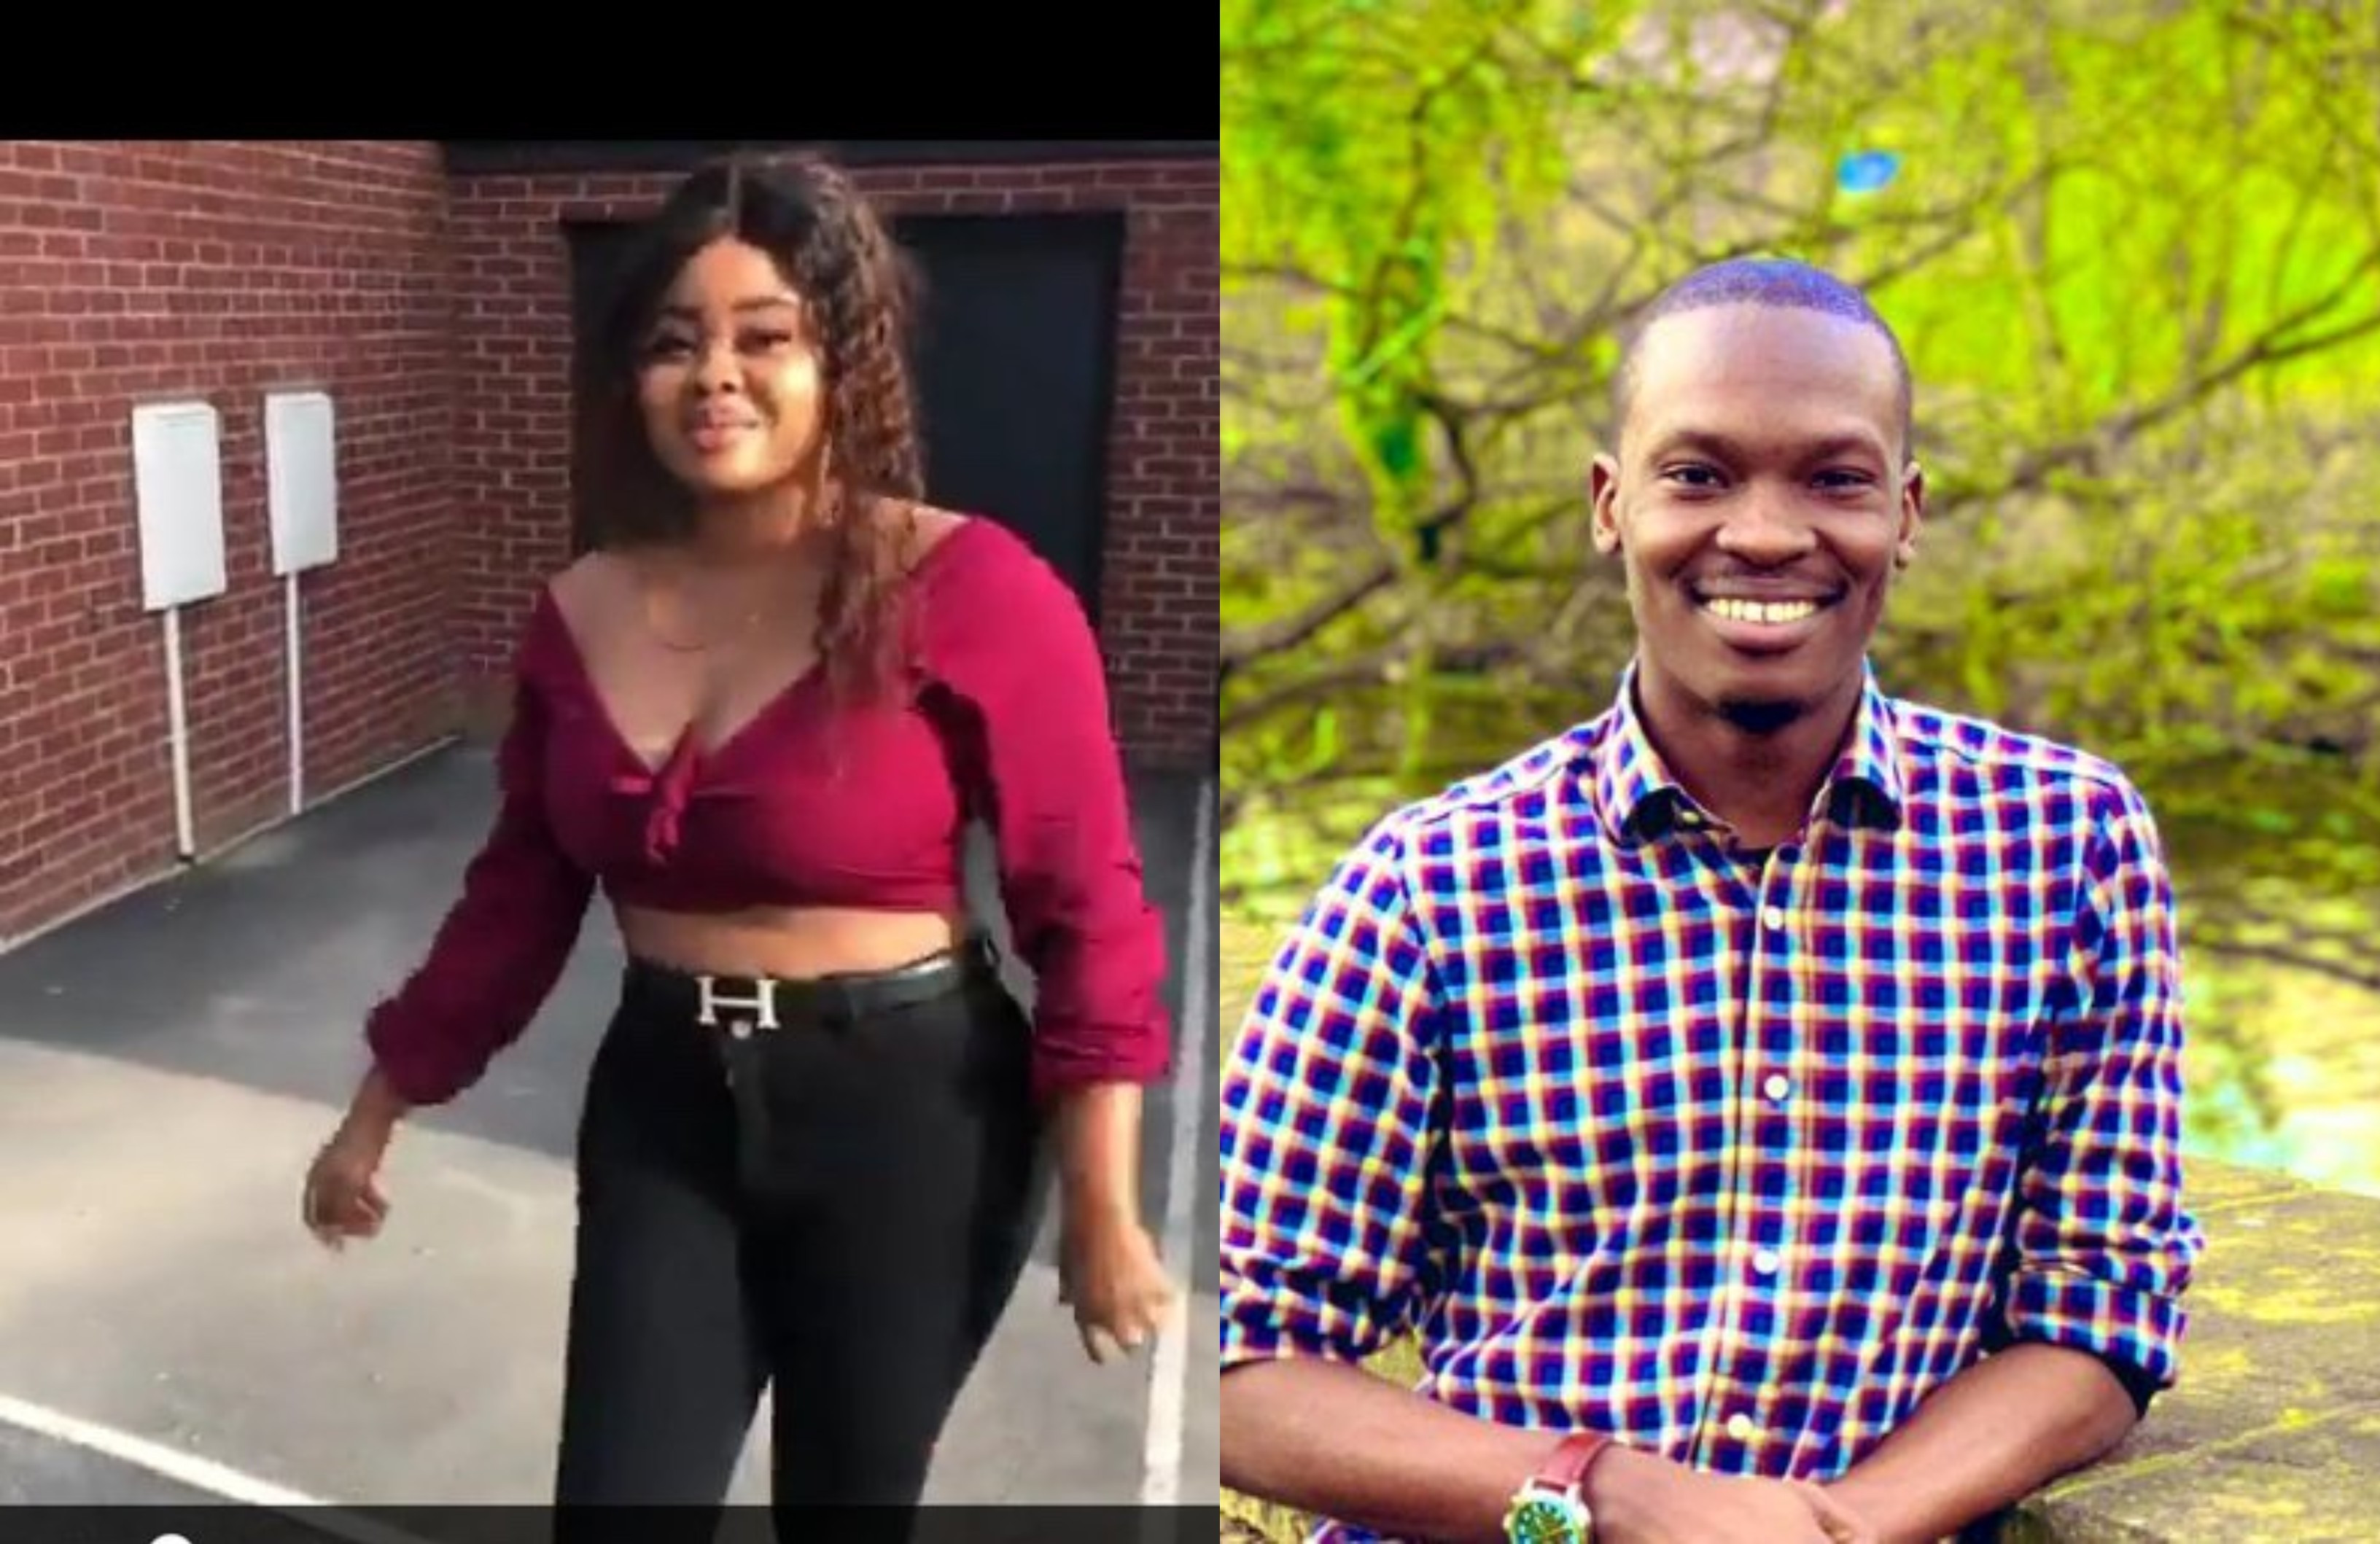 Alleged sexual abuse: Popular twitter influencer, Dr Olufunmilayo's lawyers write his accuser Bolanle Aseyan; demands €10,000 for damages